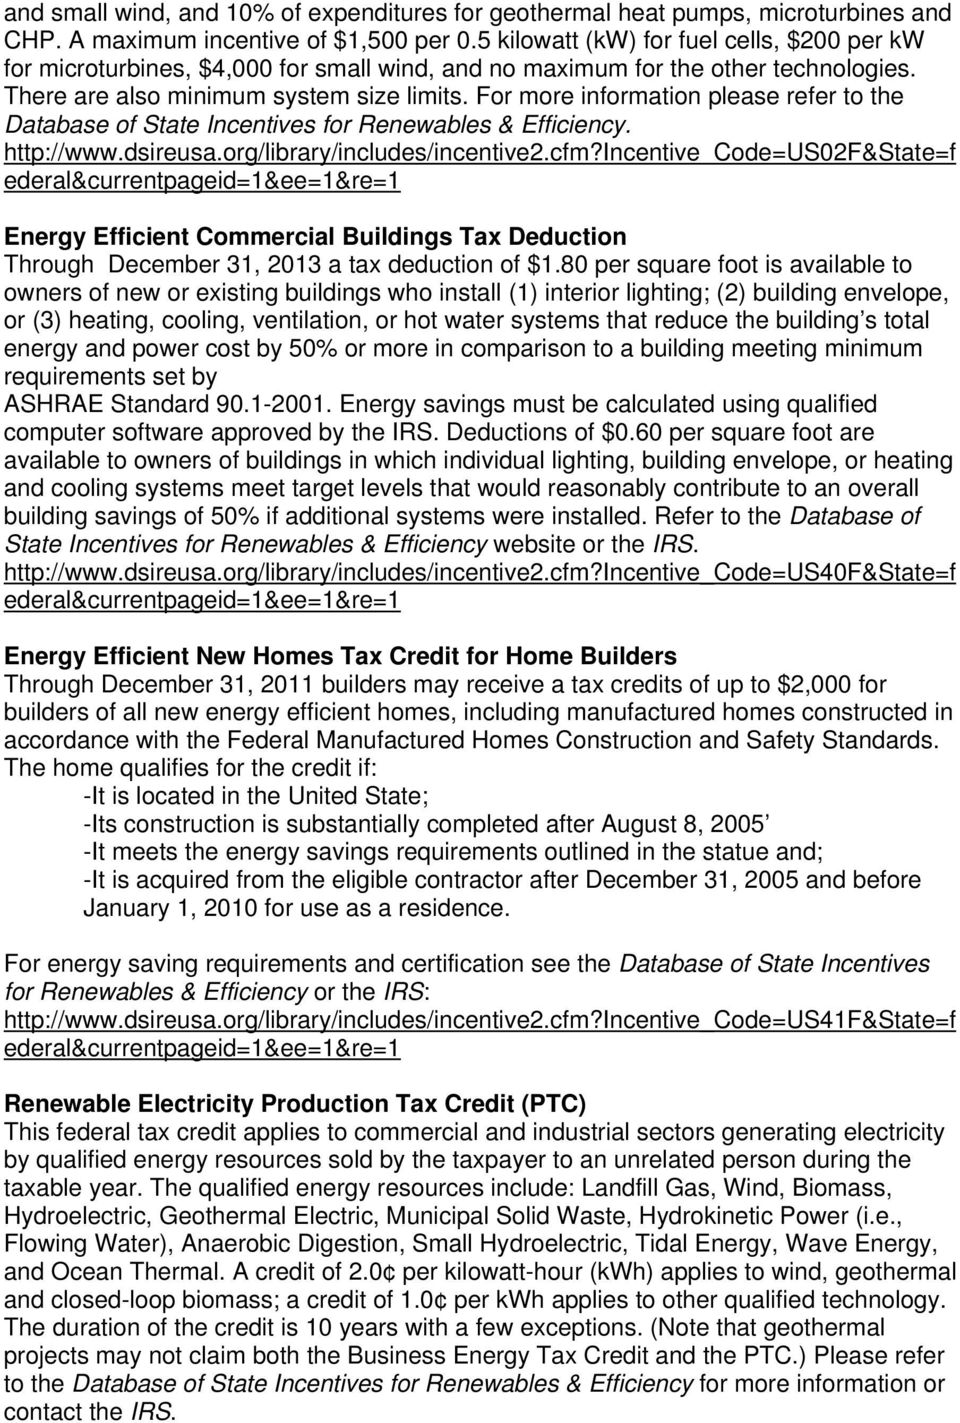 For more information please refer to the Database of State Incentives for Renewables & Efficiency. http://www.dsireusa.org/library/includes/incentive2.cfm?